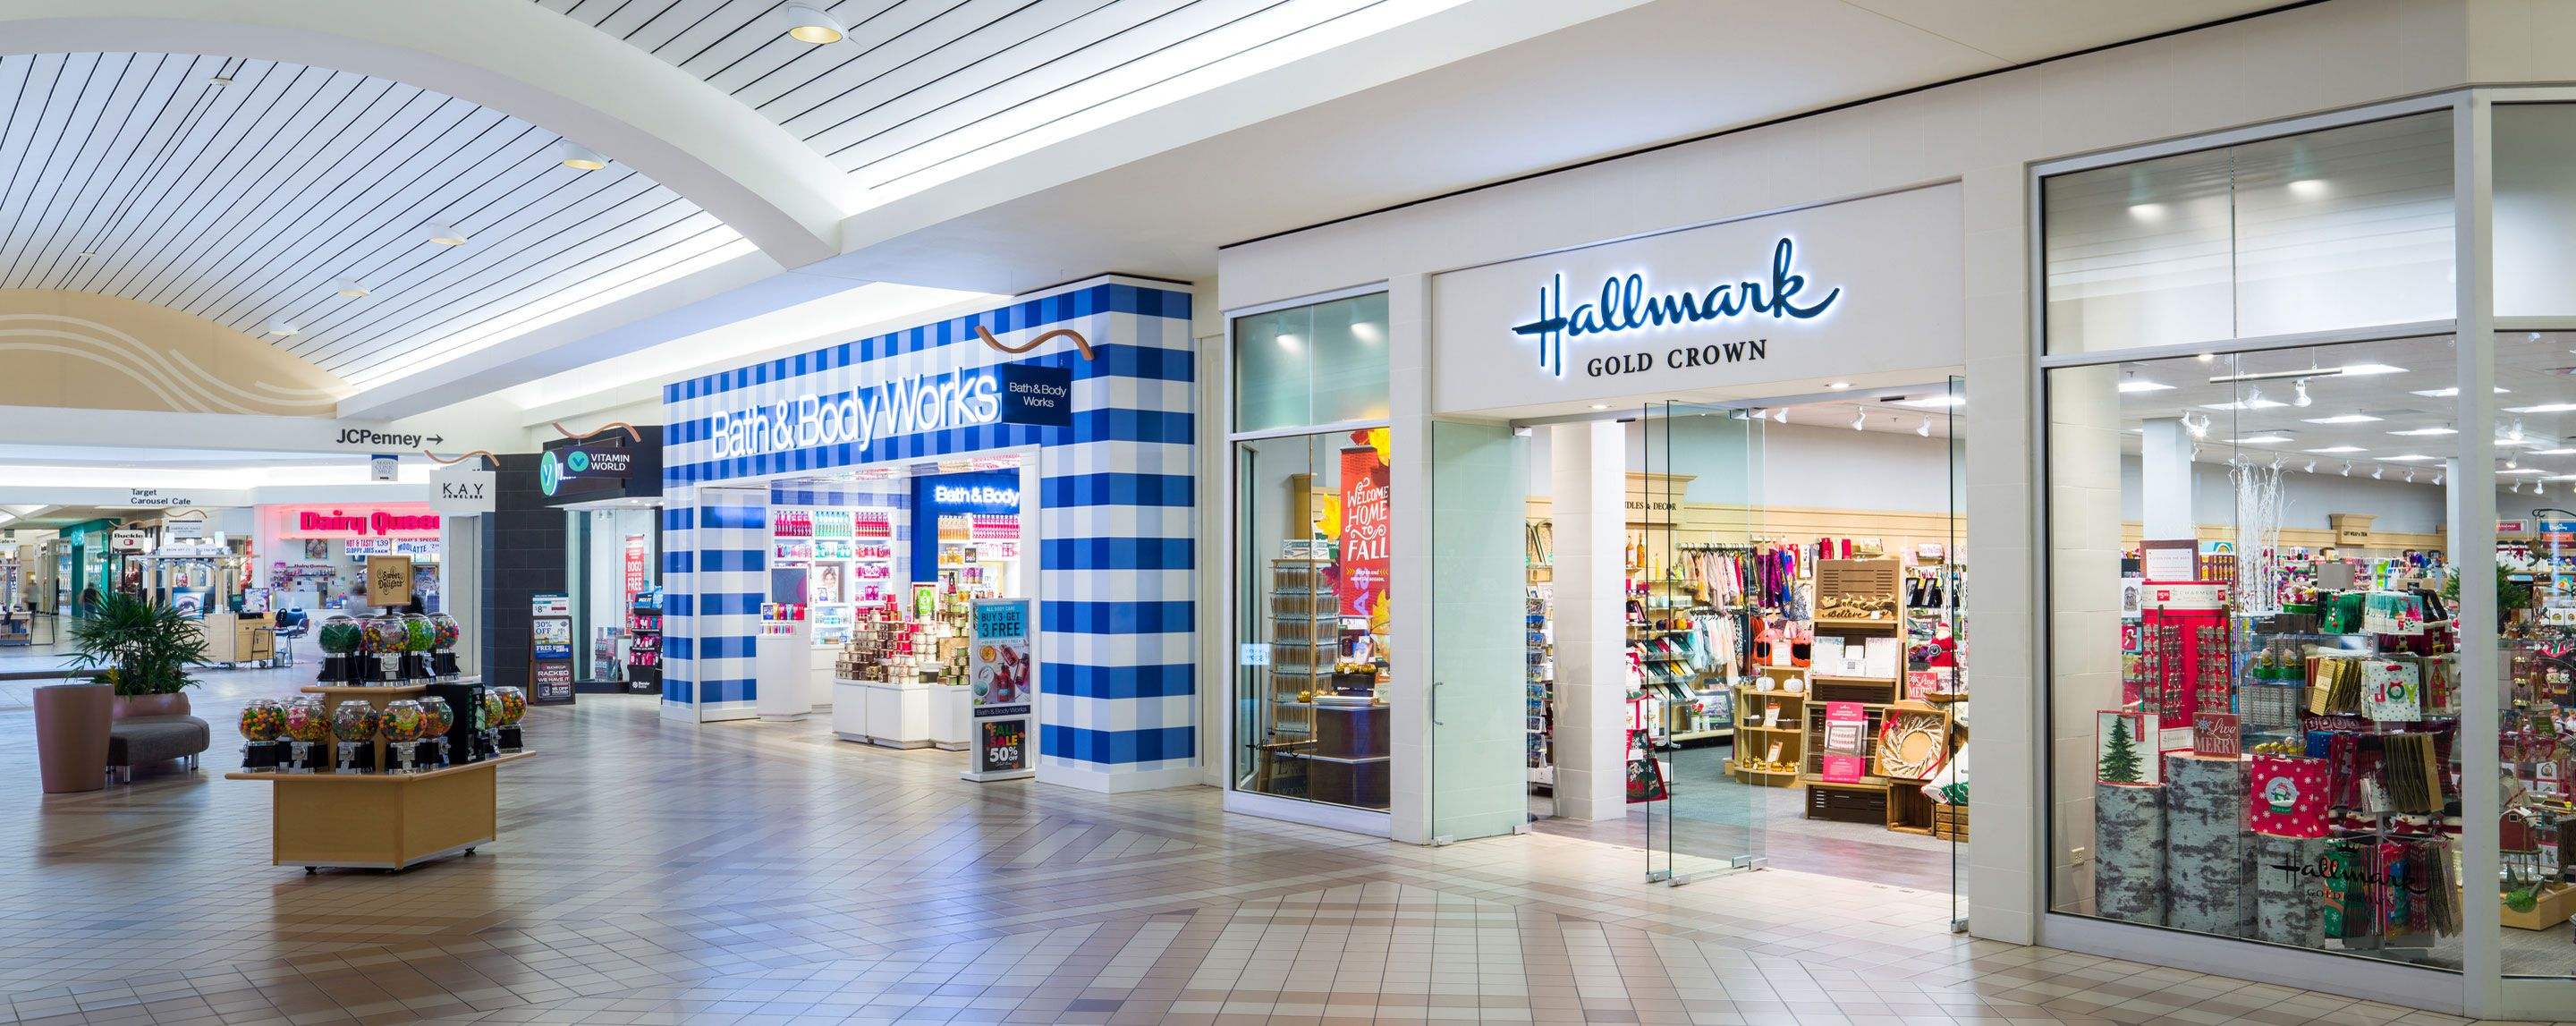 An interior shot of a line of mall storefronts. A Hallmark Store and Bath and Bodyworks are visible.